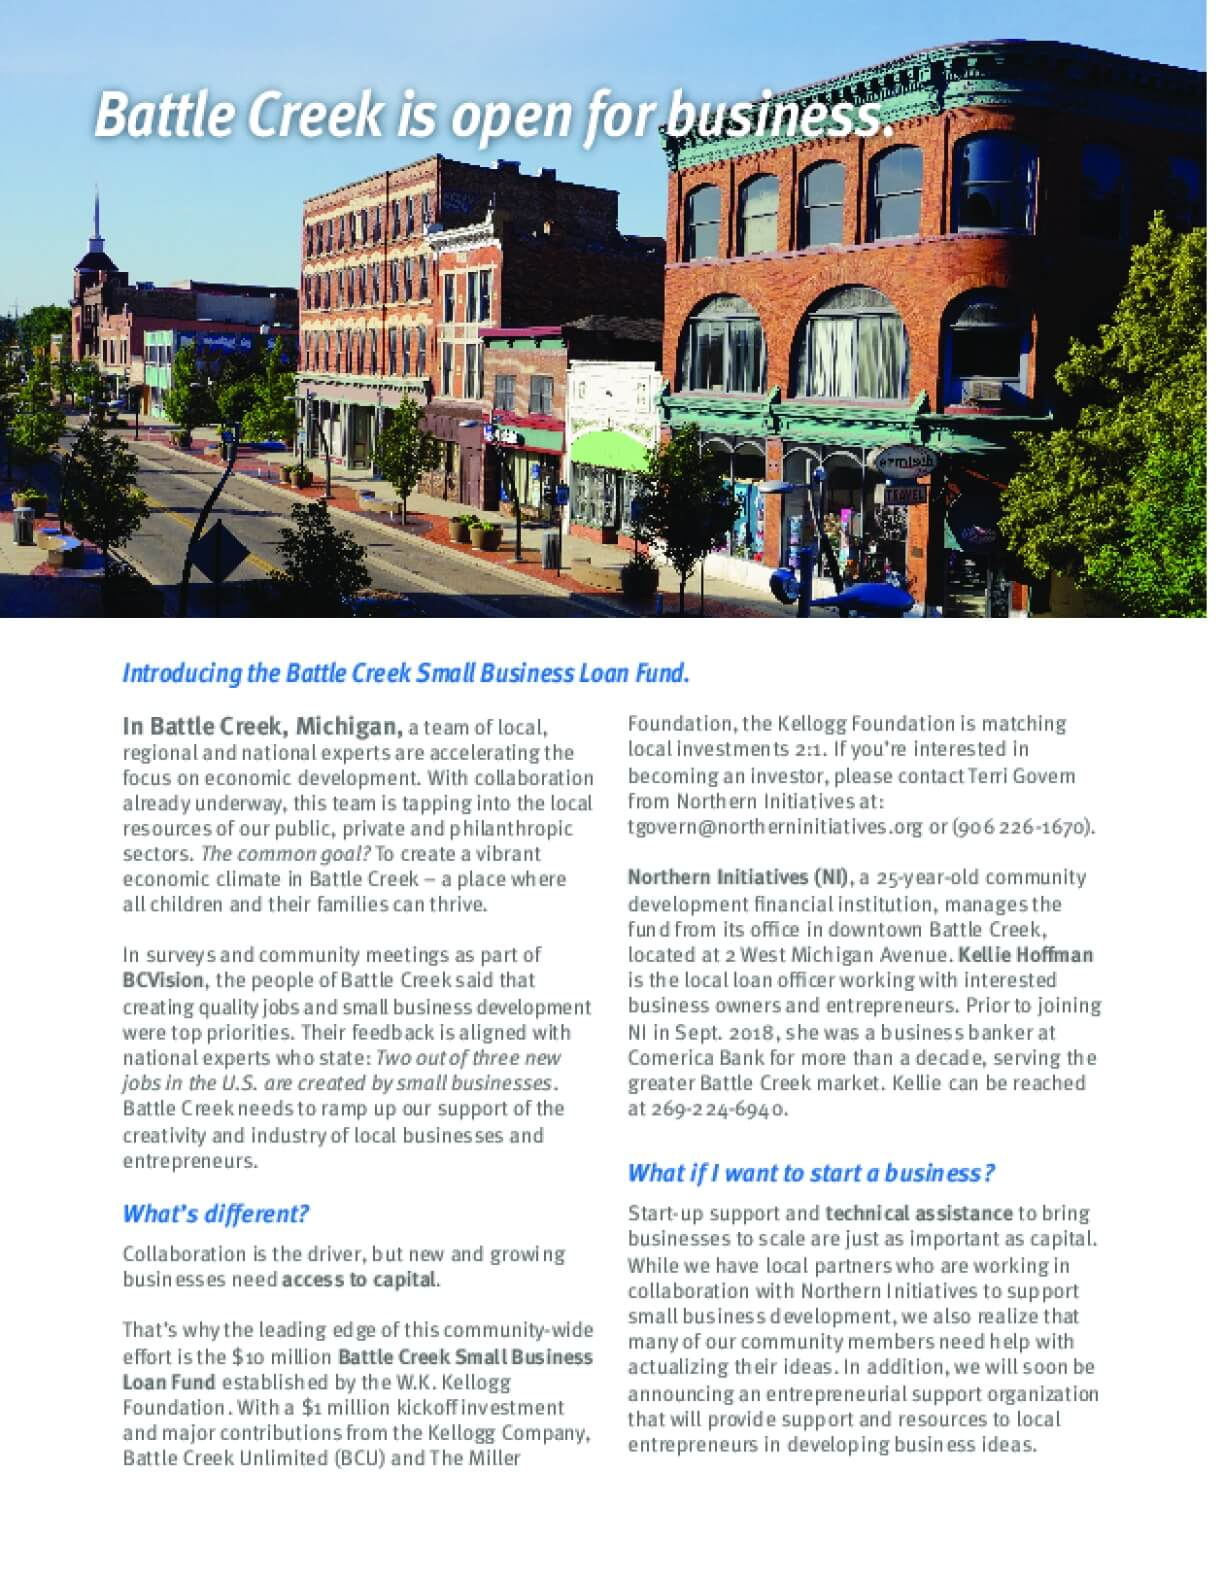 Introducing the Battle Creek Small Business Loan Fund